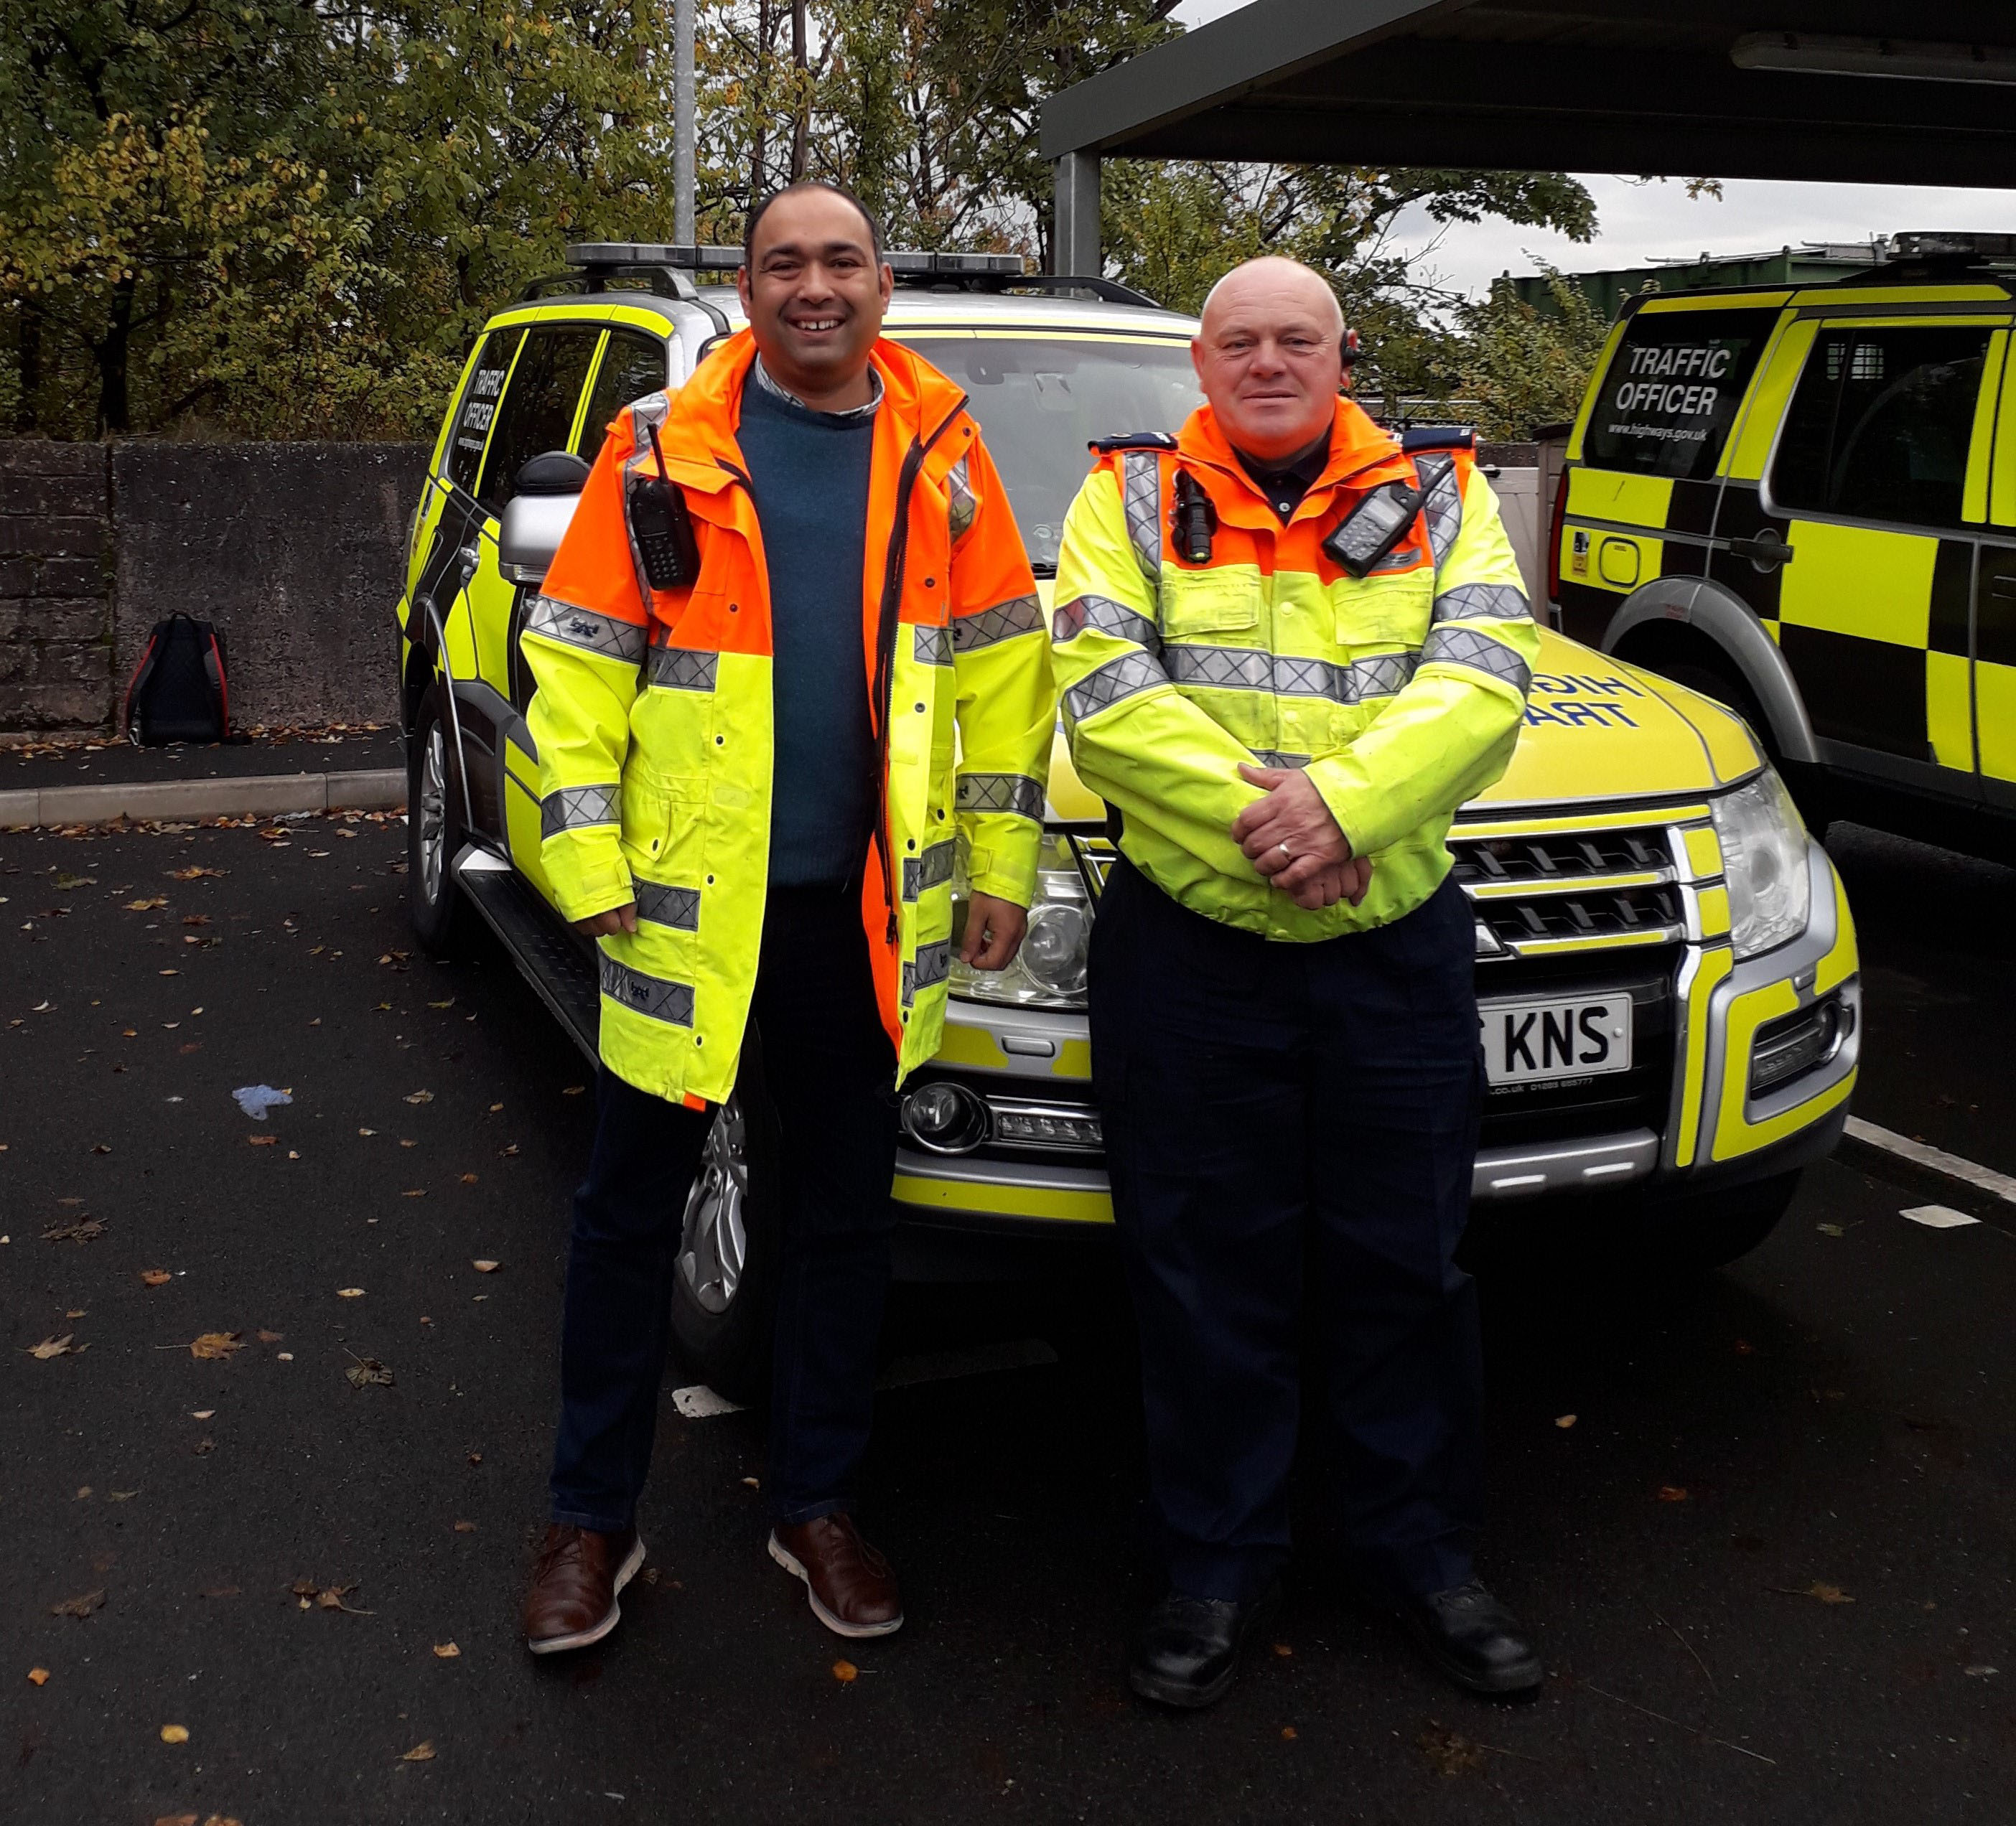 Tim Anderson with Deano Shieders from Cheshire Traffic Patrol